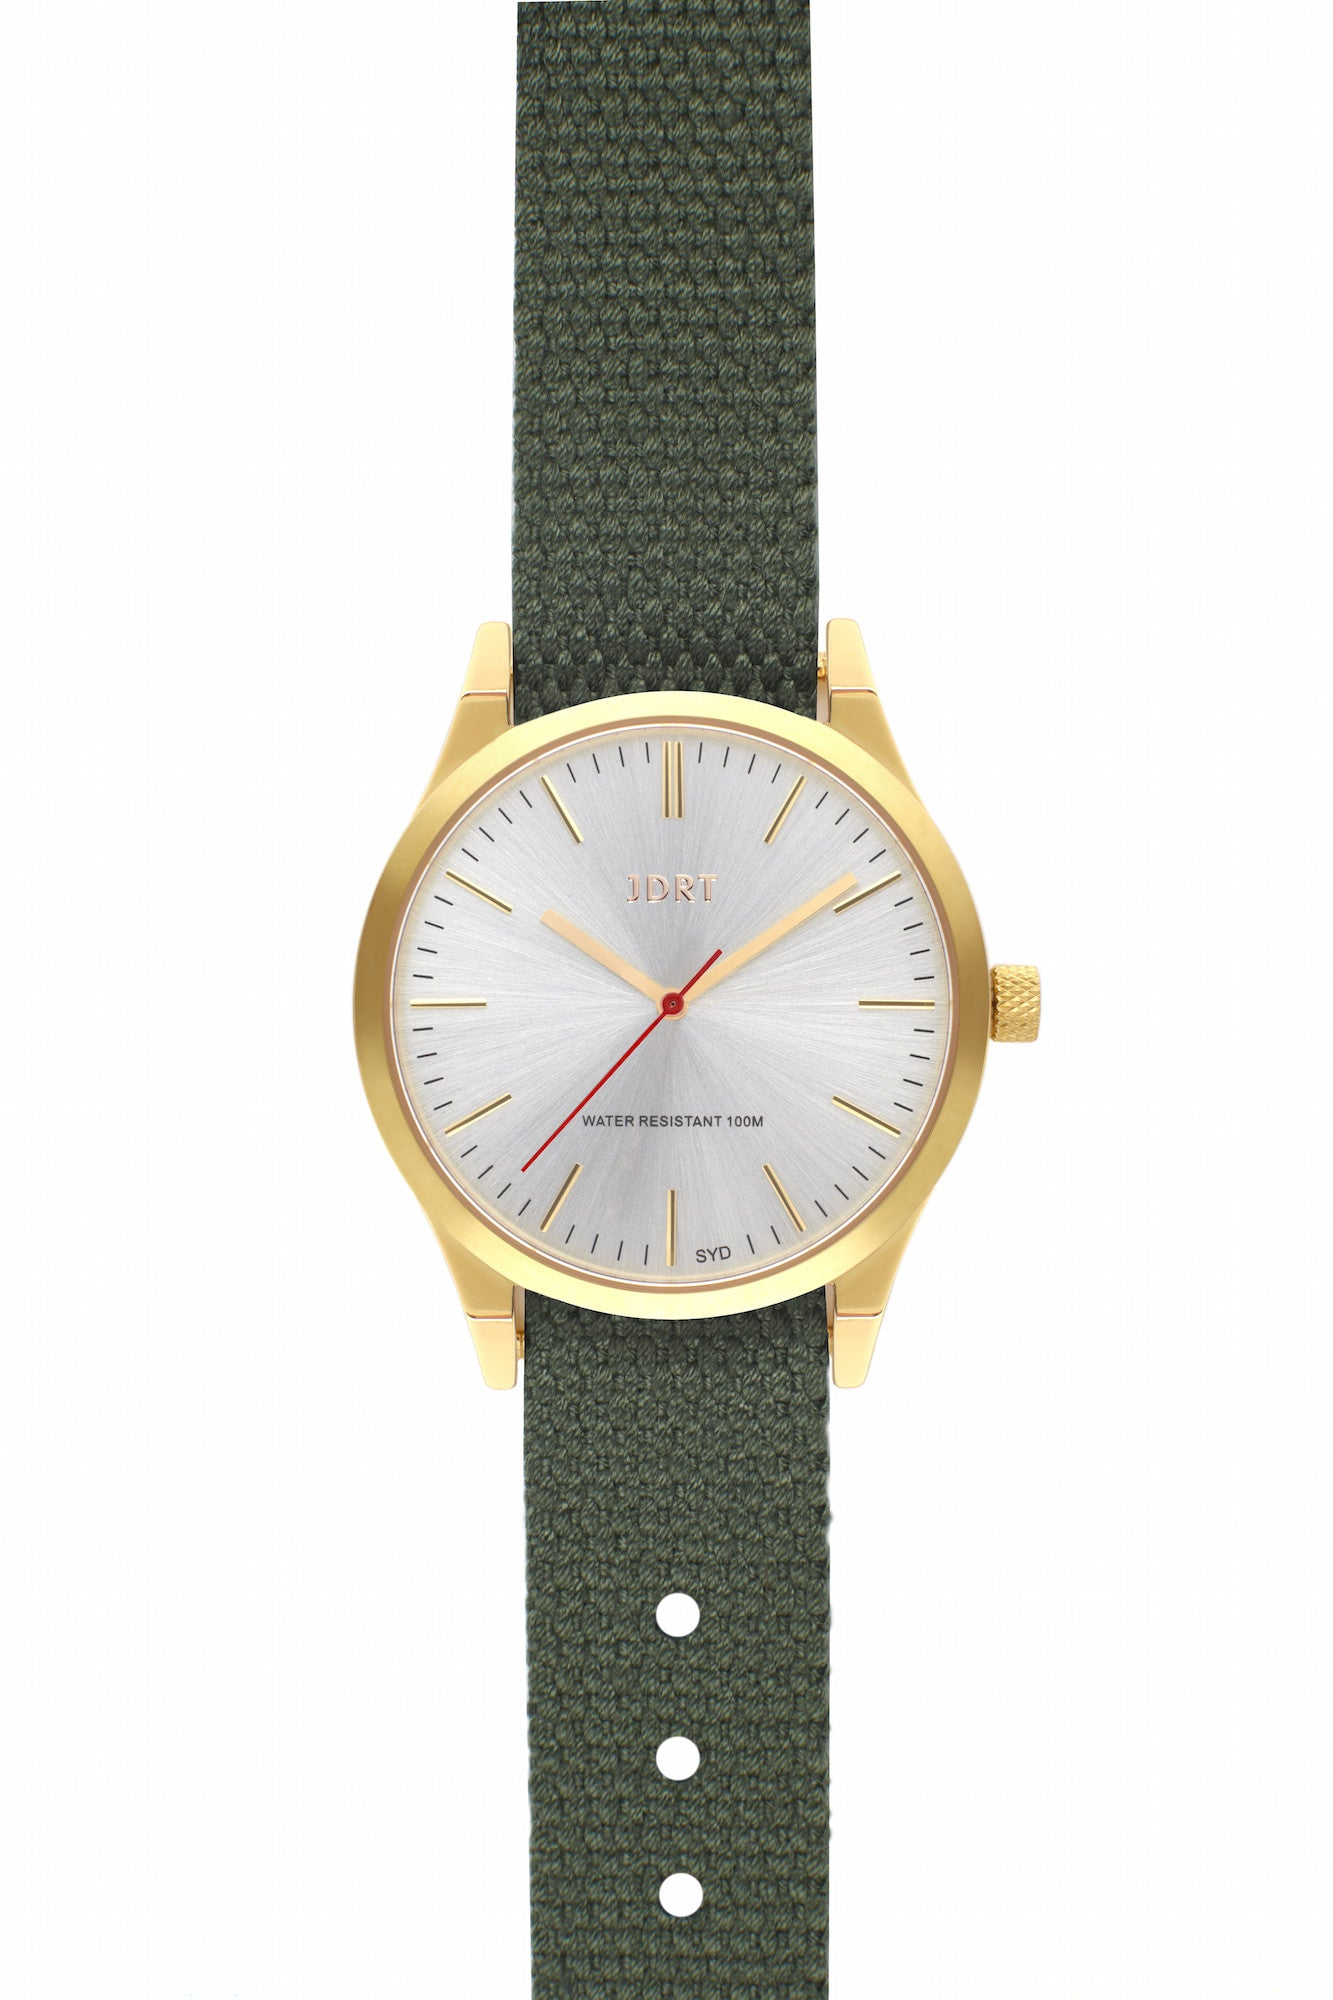 Brushed Silver Face with Army Canvas Watch Band